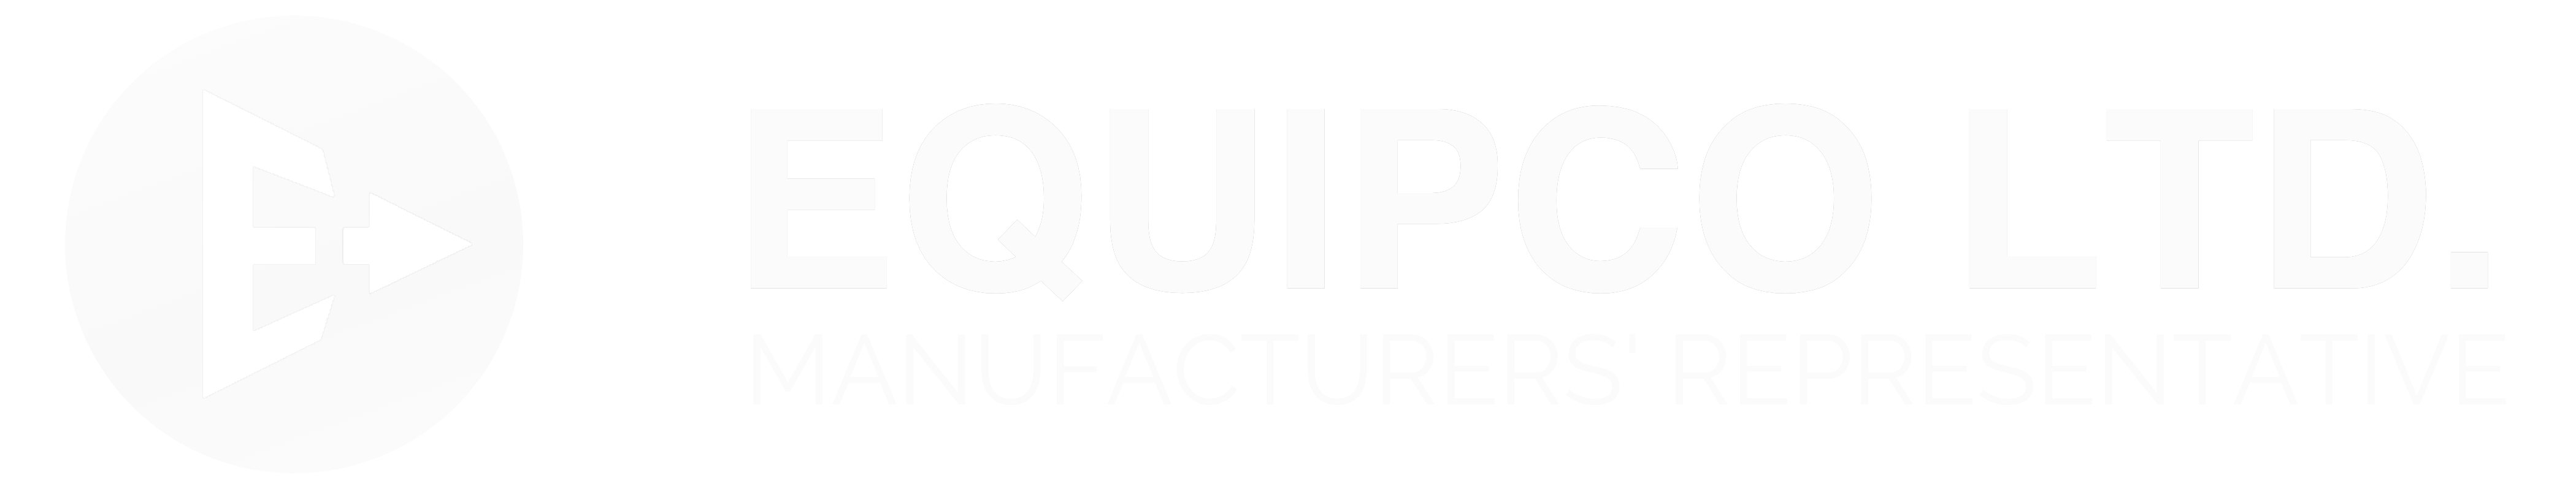 Equipco Ltd. | Plumbing & Heating Manufacturer Representative